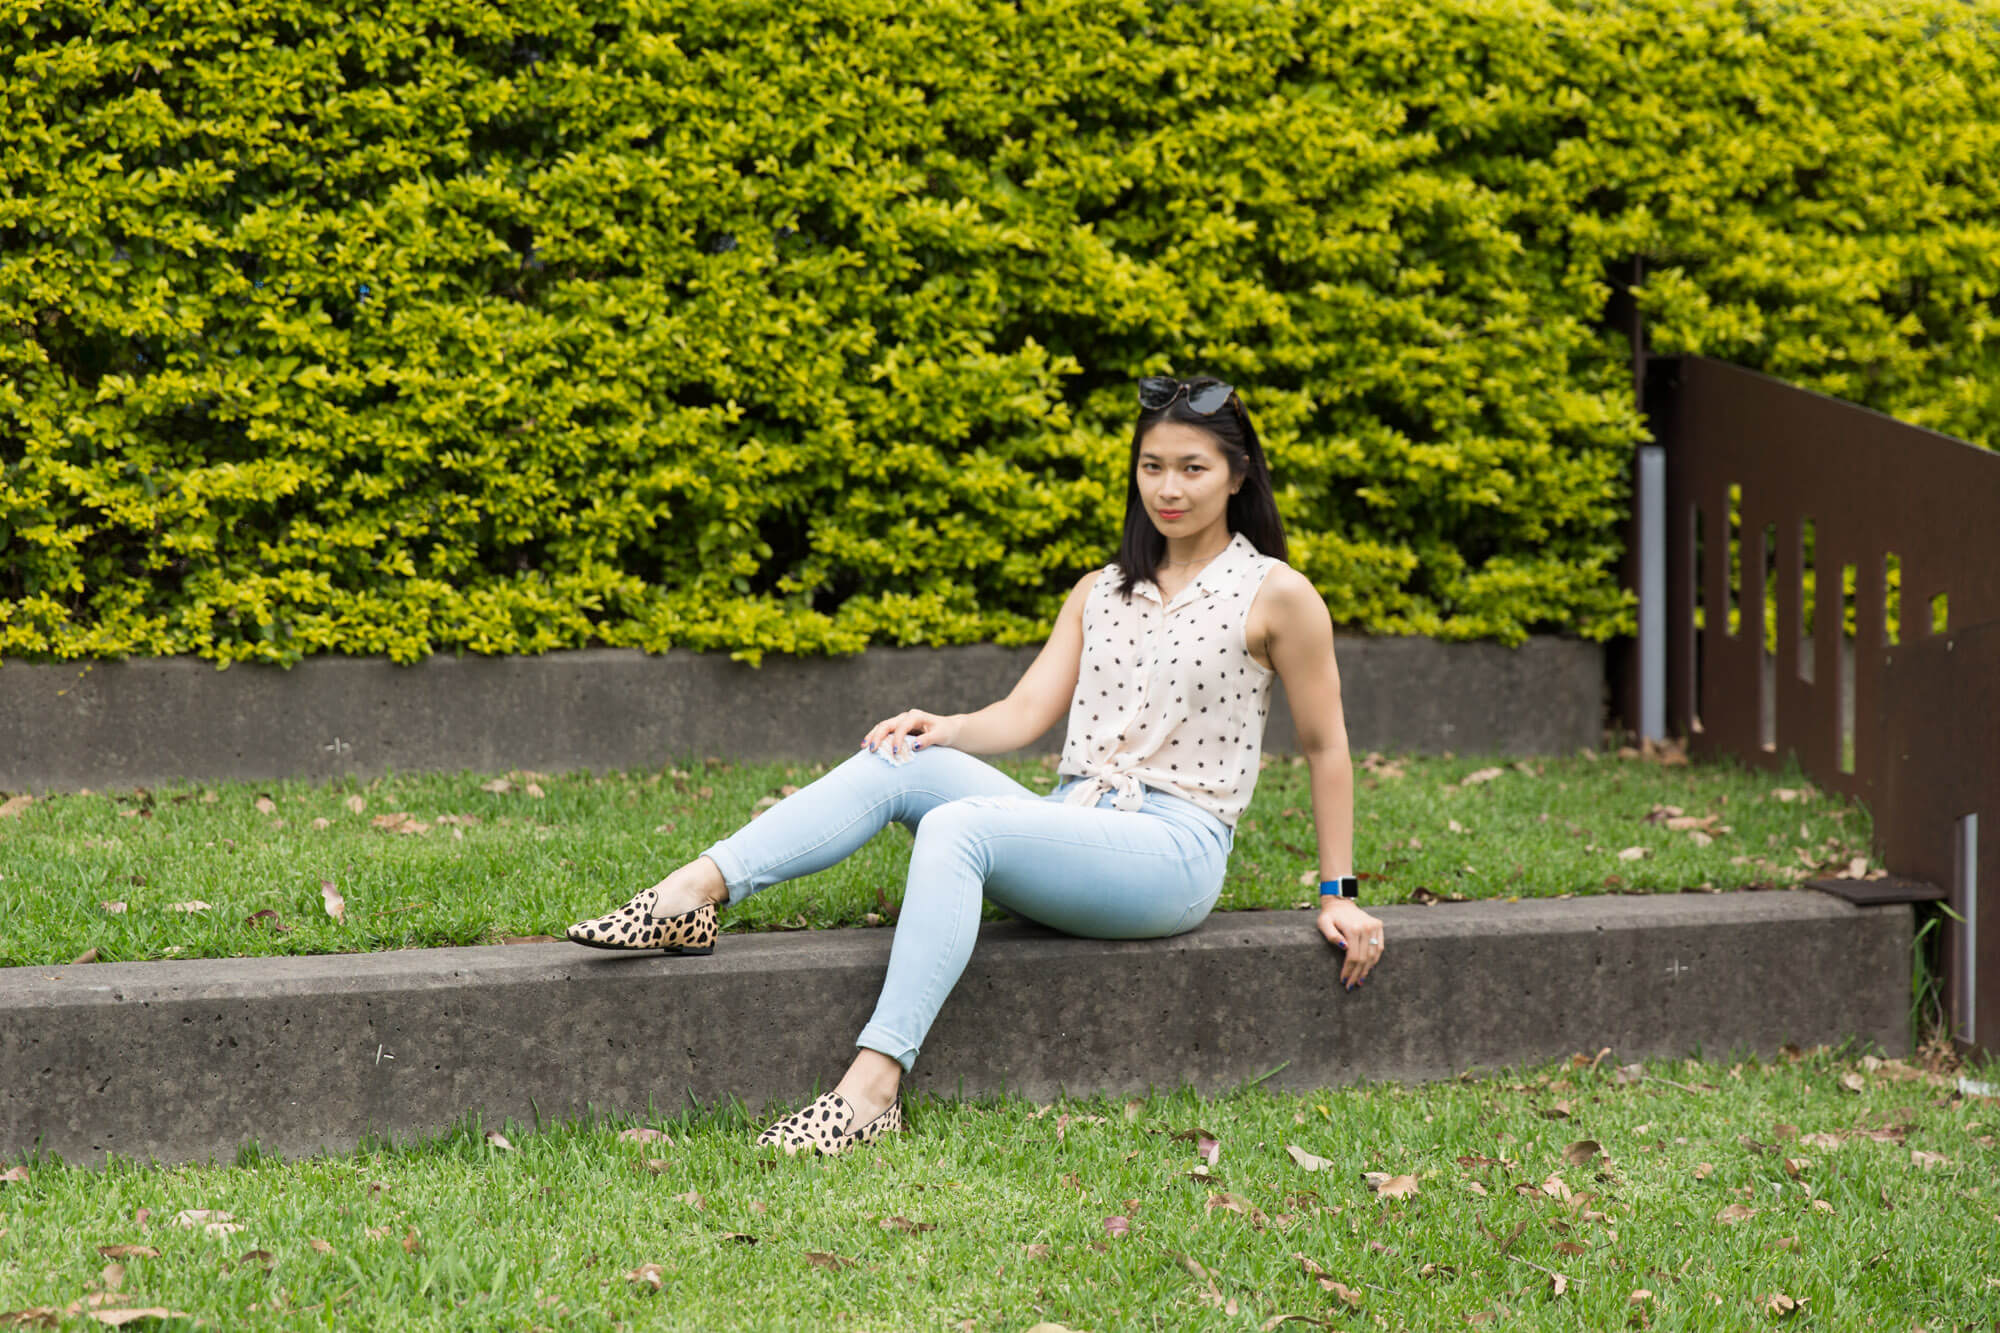 A woman sitting on the concrete step of a grassy park. Her legs are bent and slightly outstretched and she is leaning back using one of her hands as support. She is wearing light blue jeans, a light coloured top and shoes, which have patterns on them. She has sunglasses on top of her head